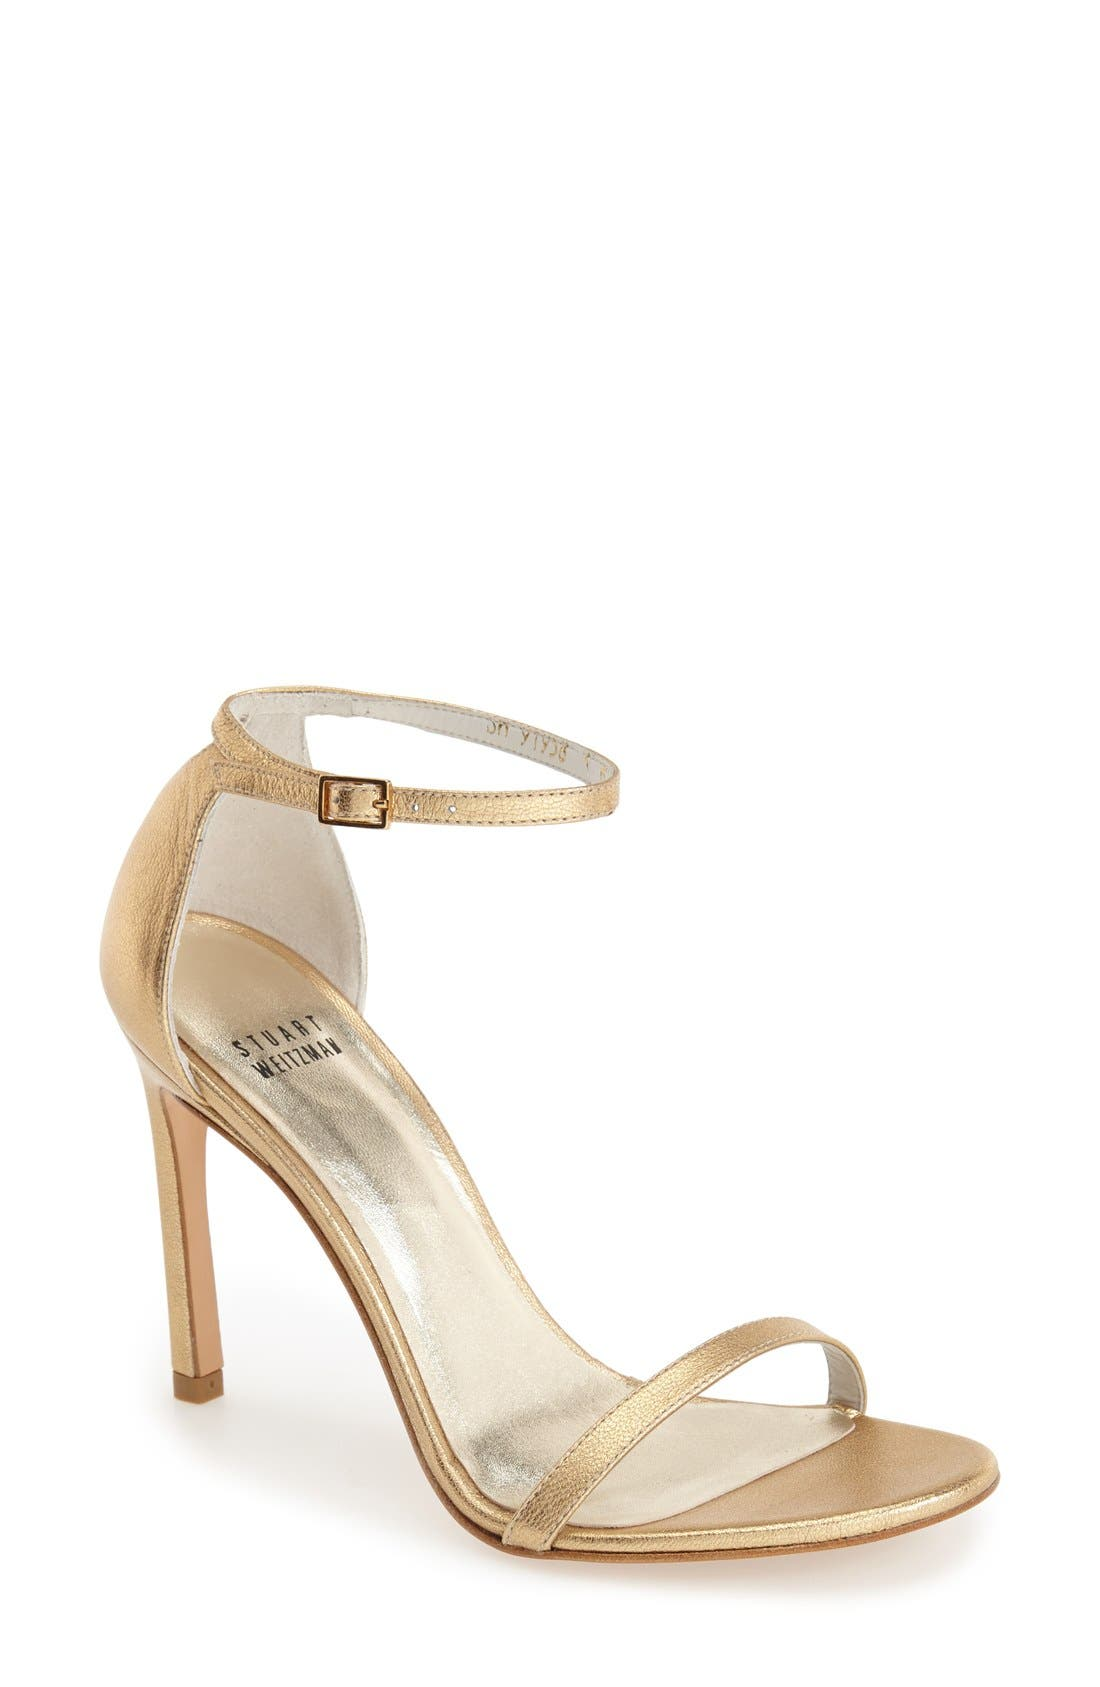 Nudistsong Ankle Strap Sandal,                             Main thumbnail 41, color,